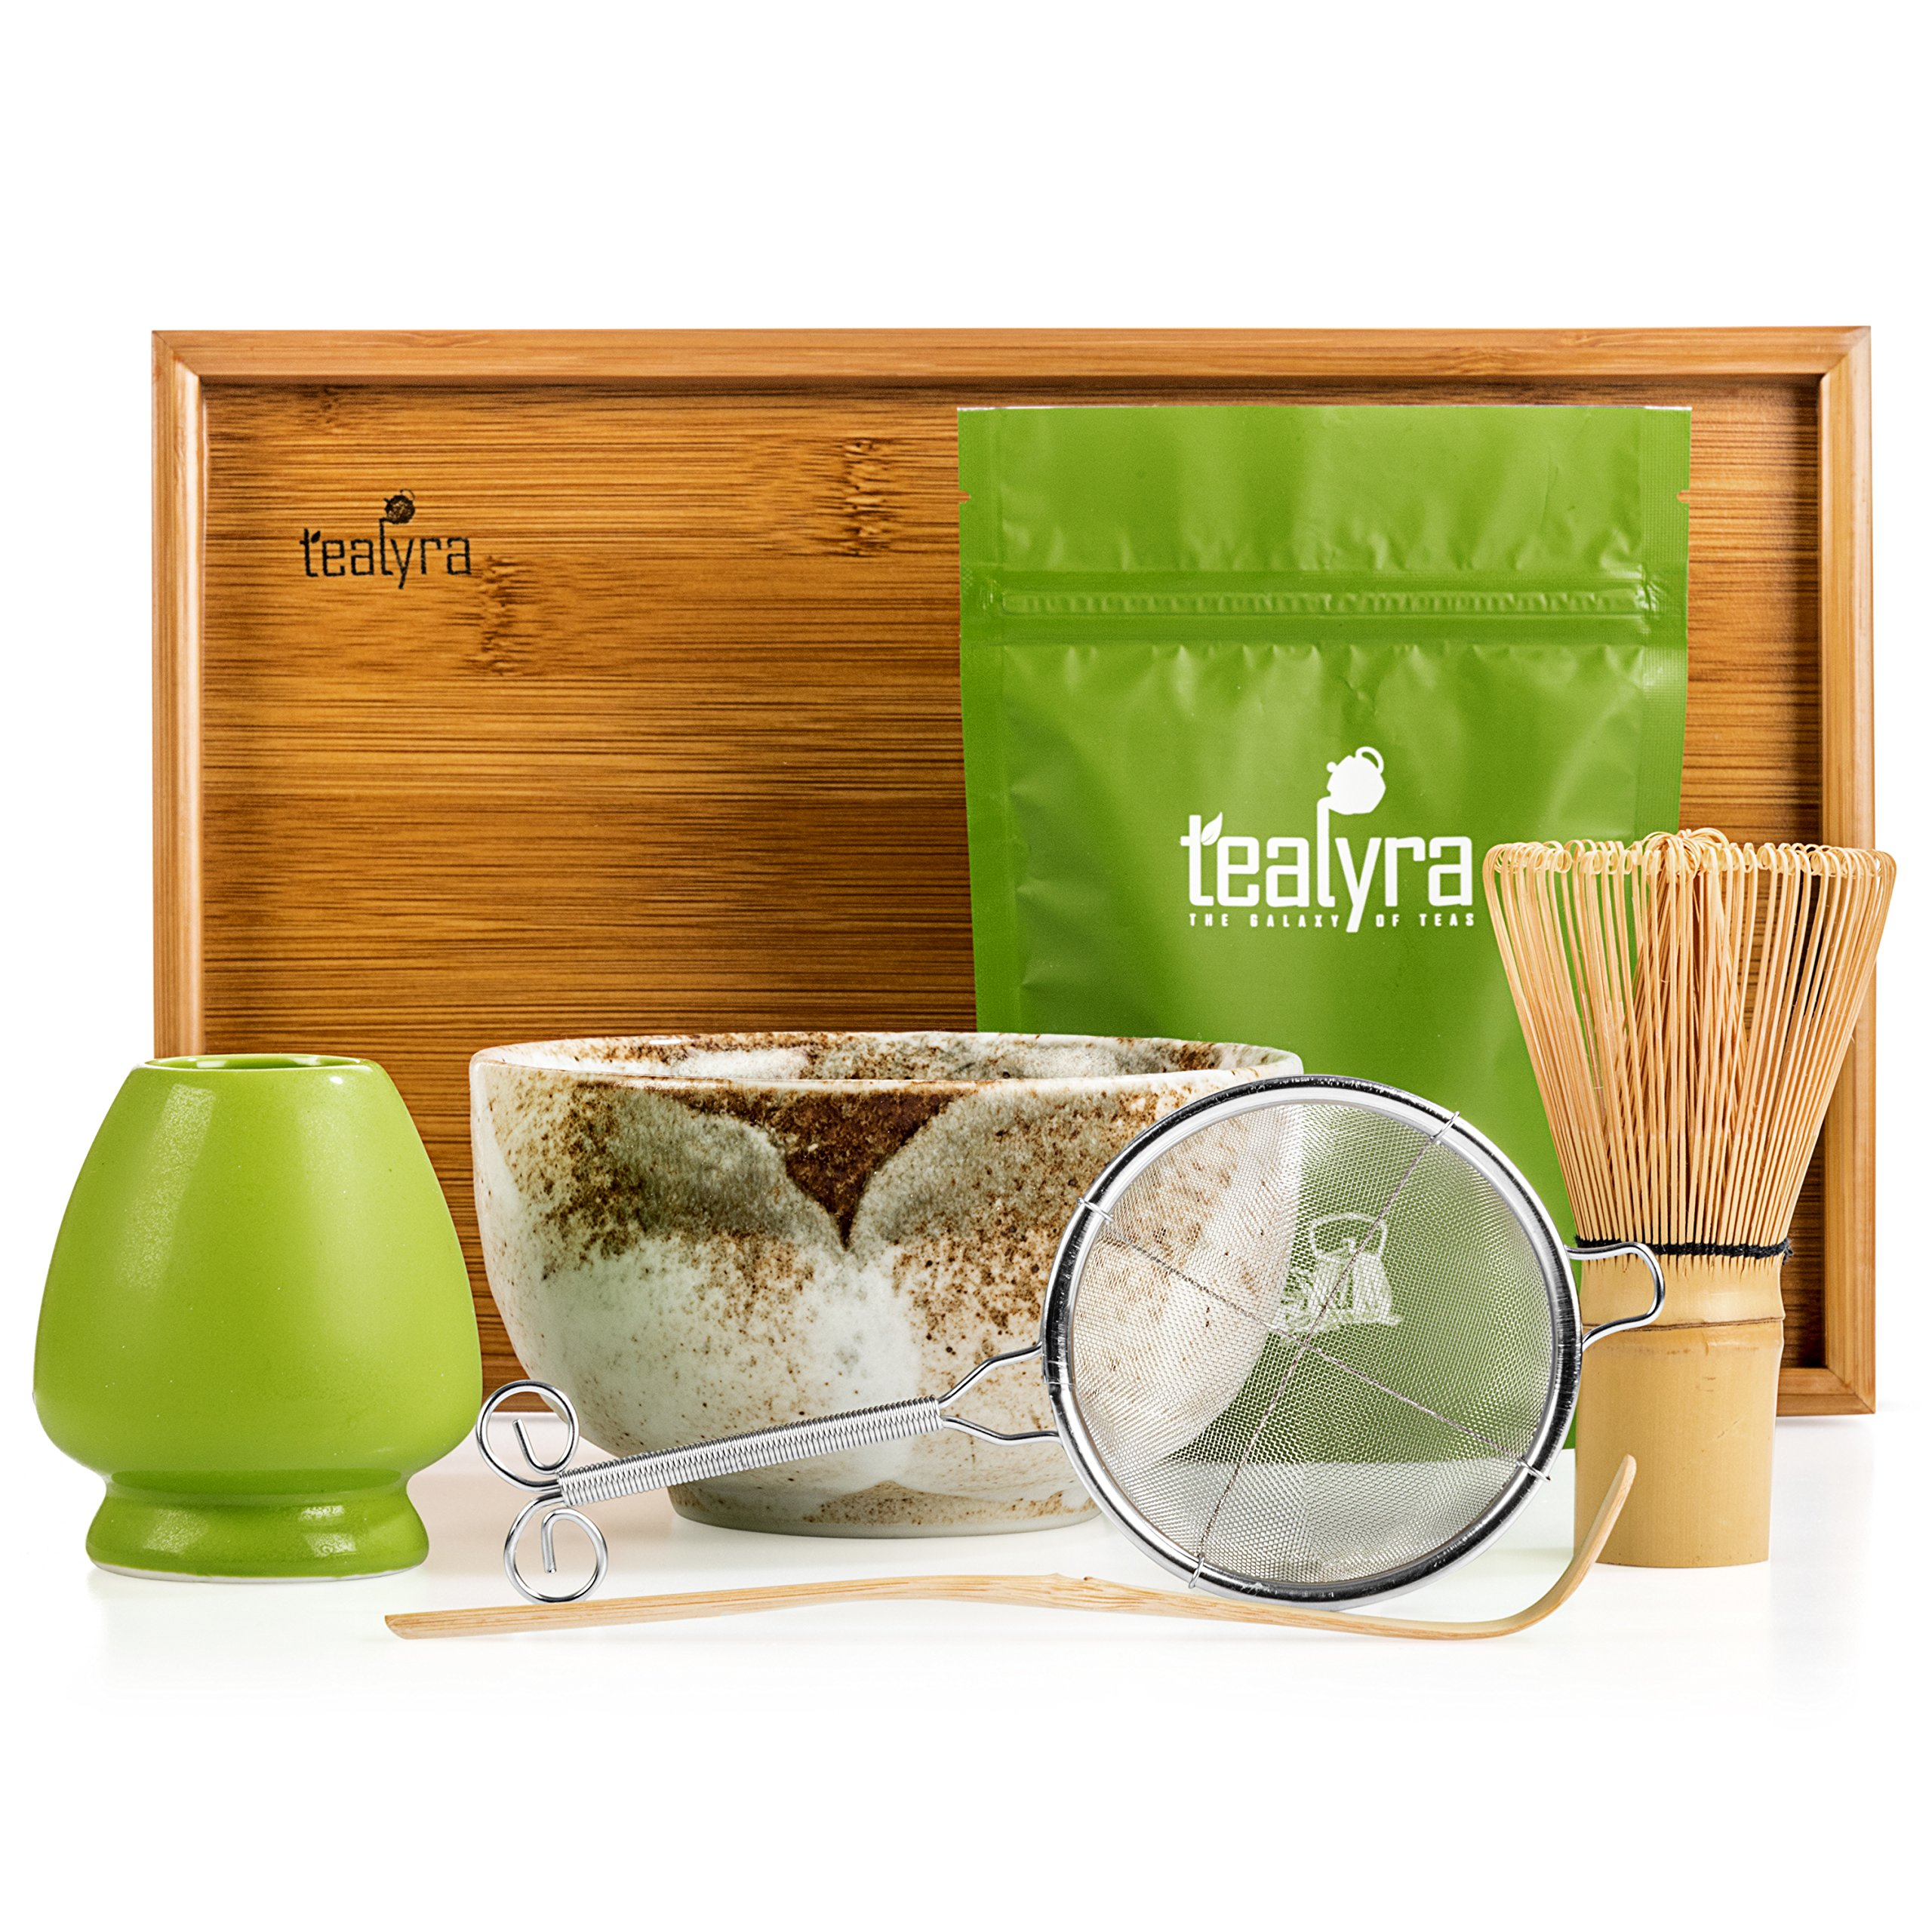 Tealyra - Matcha - Connoisseur Ceremony Start Up Kit - Complete Matcha Green Tea Gift Set - Imperial Matcha Tea Powder - Japanese Made Beige Bowl - Bamboo Whisk Scoop and Tray - Holder - Sifter by Tealyra